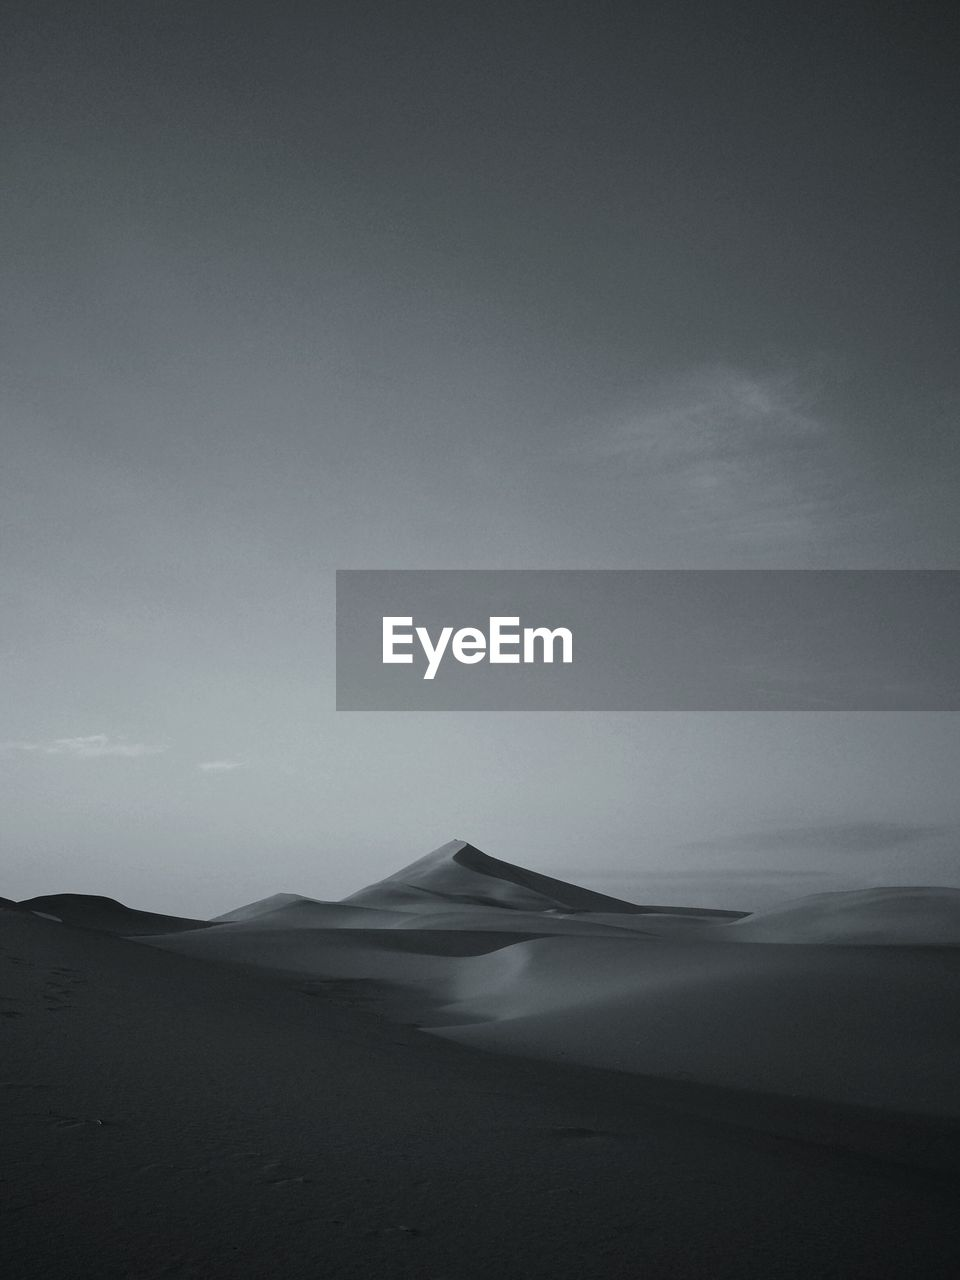 sky, scenics - nature, beauty in nature, land, tranquility, tranquil scene, environment, landscape, no people, desert, nature, copy space, non-urban scene, remote, cloud - sky, travel destinations, climate, day, arid climate, sand